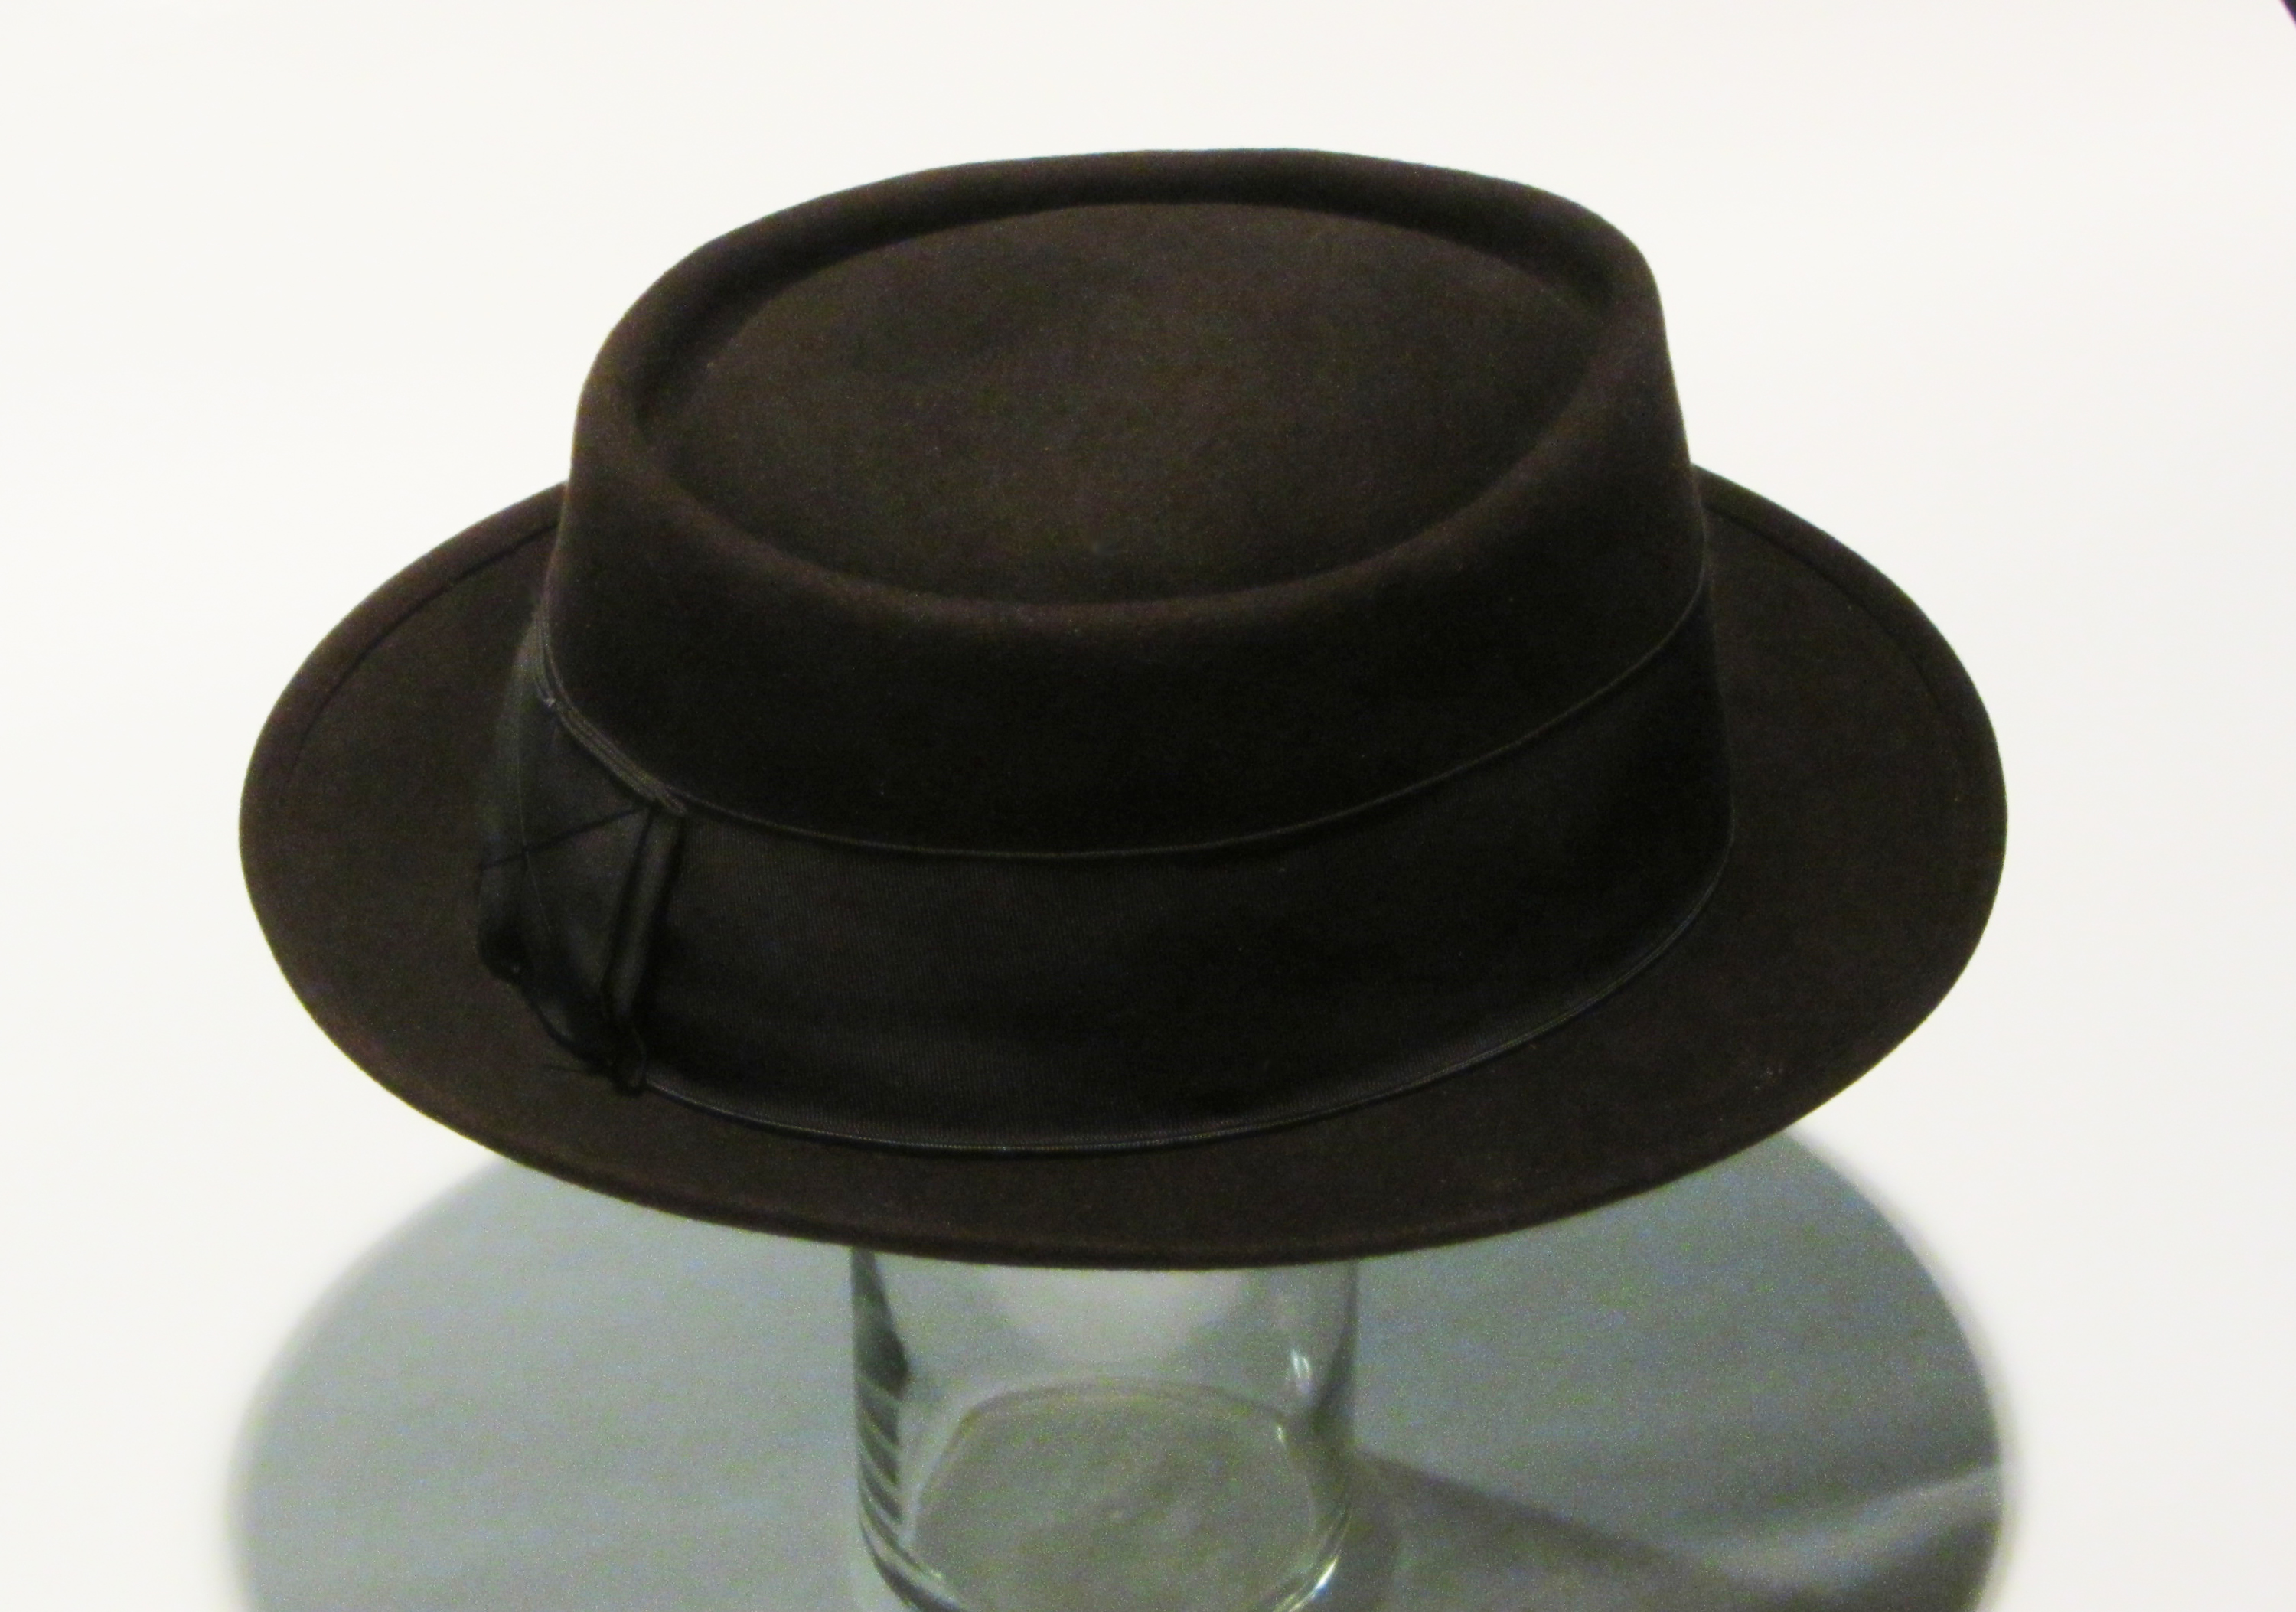 b94823d81c2 Pork pie hat - Wikipedia